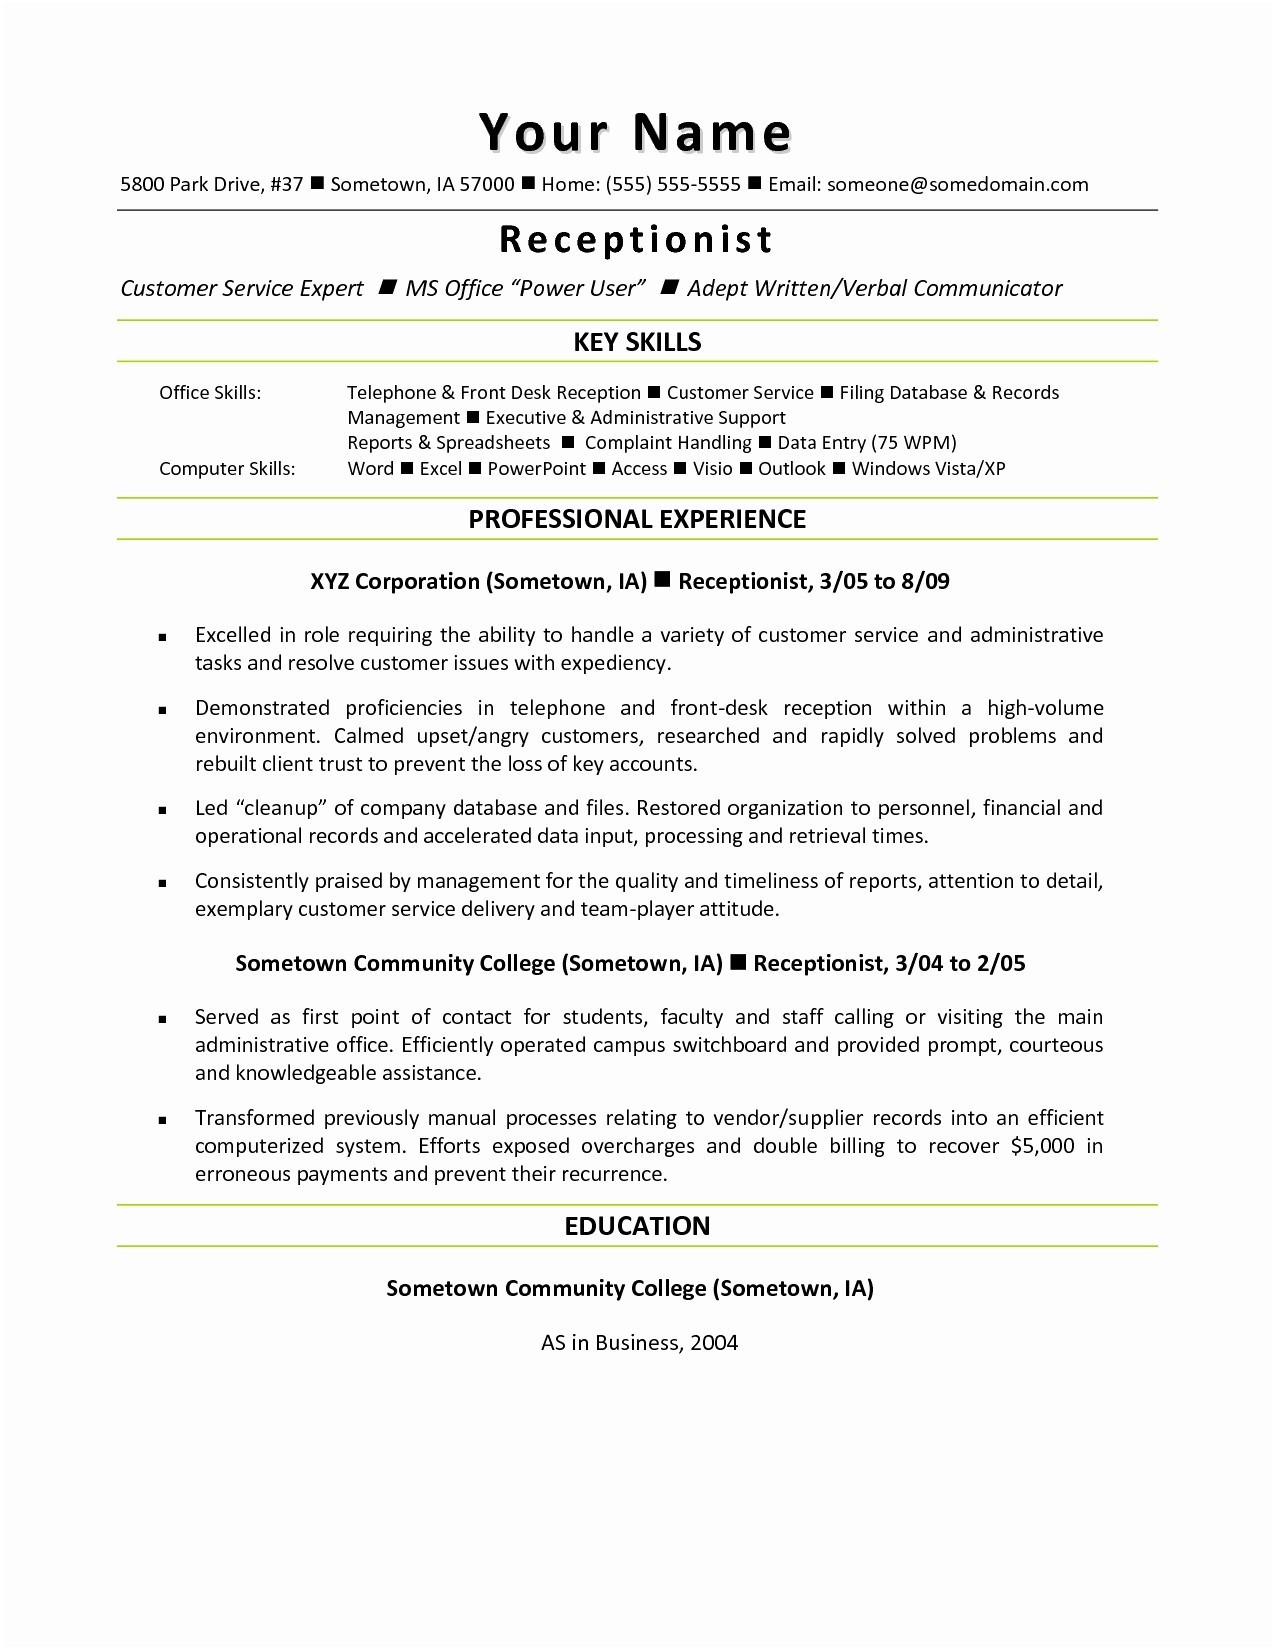 Microsoft Word Resume Cover Letter Template - Resume Microsoft Word Fresh Resume Mail format Sample Fresh